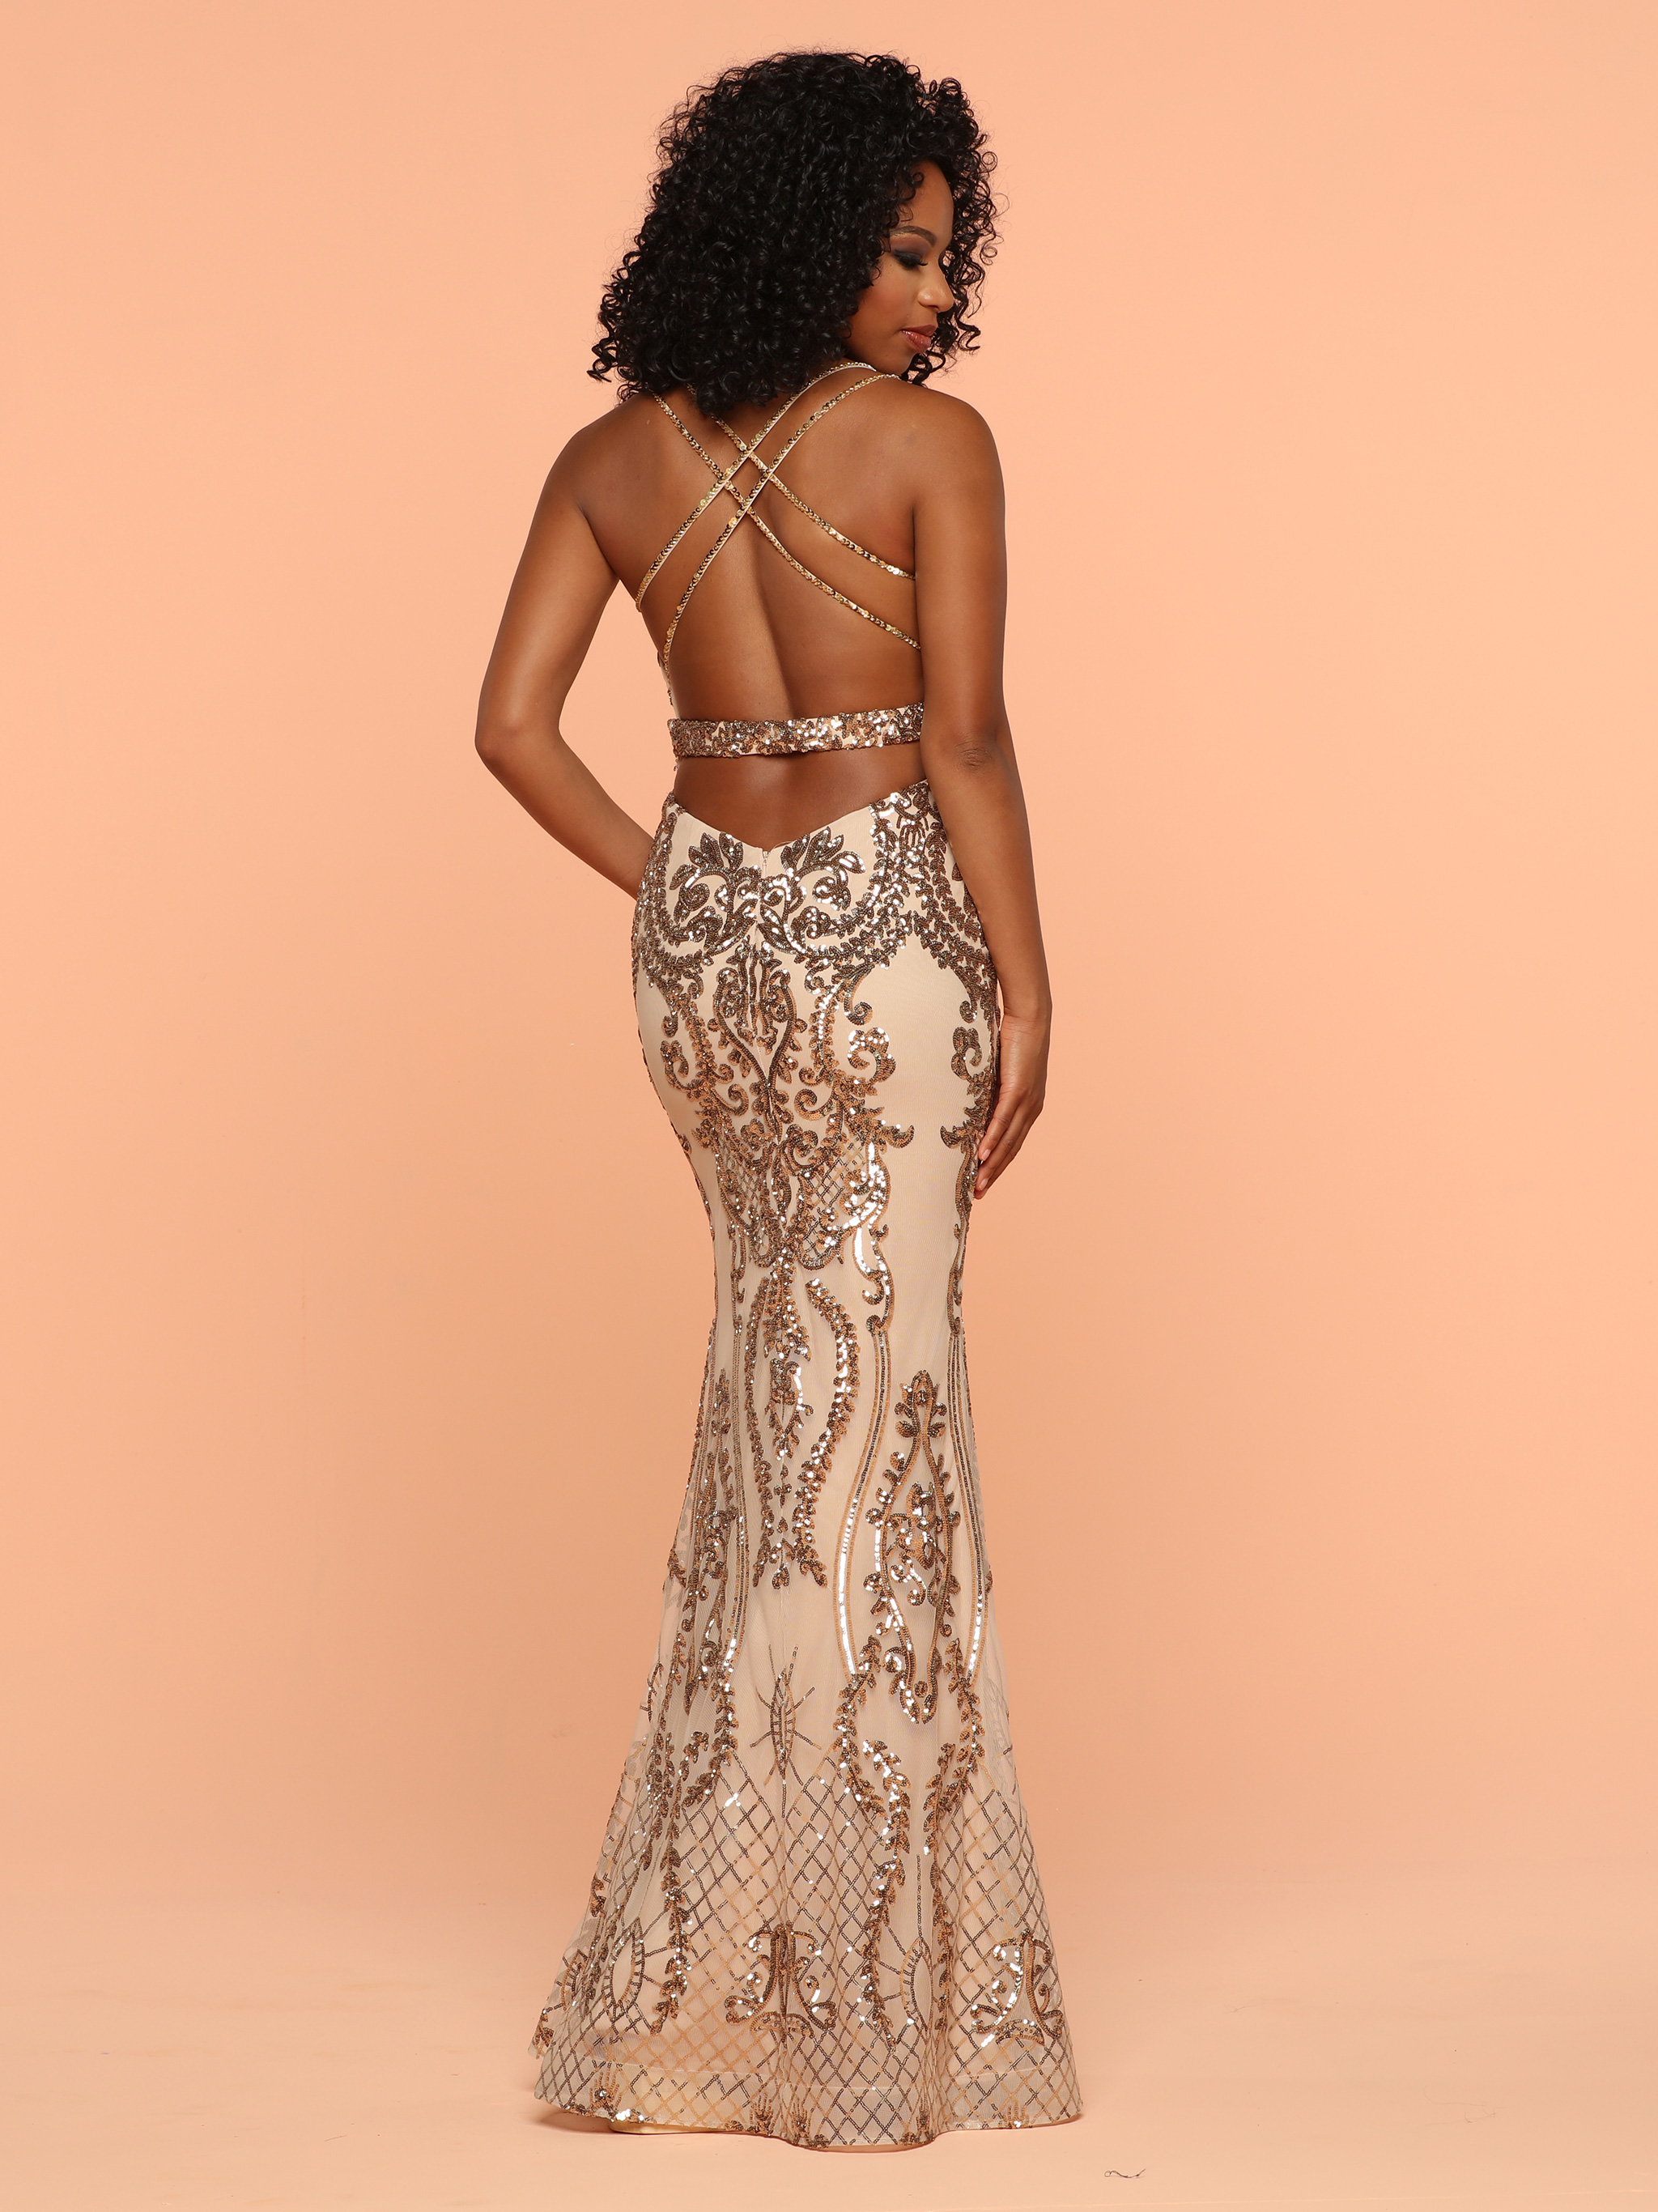 Image showing back view of style #71905